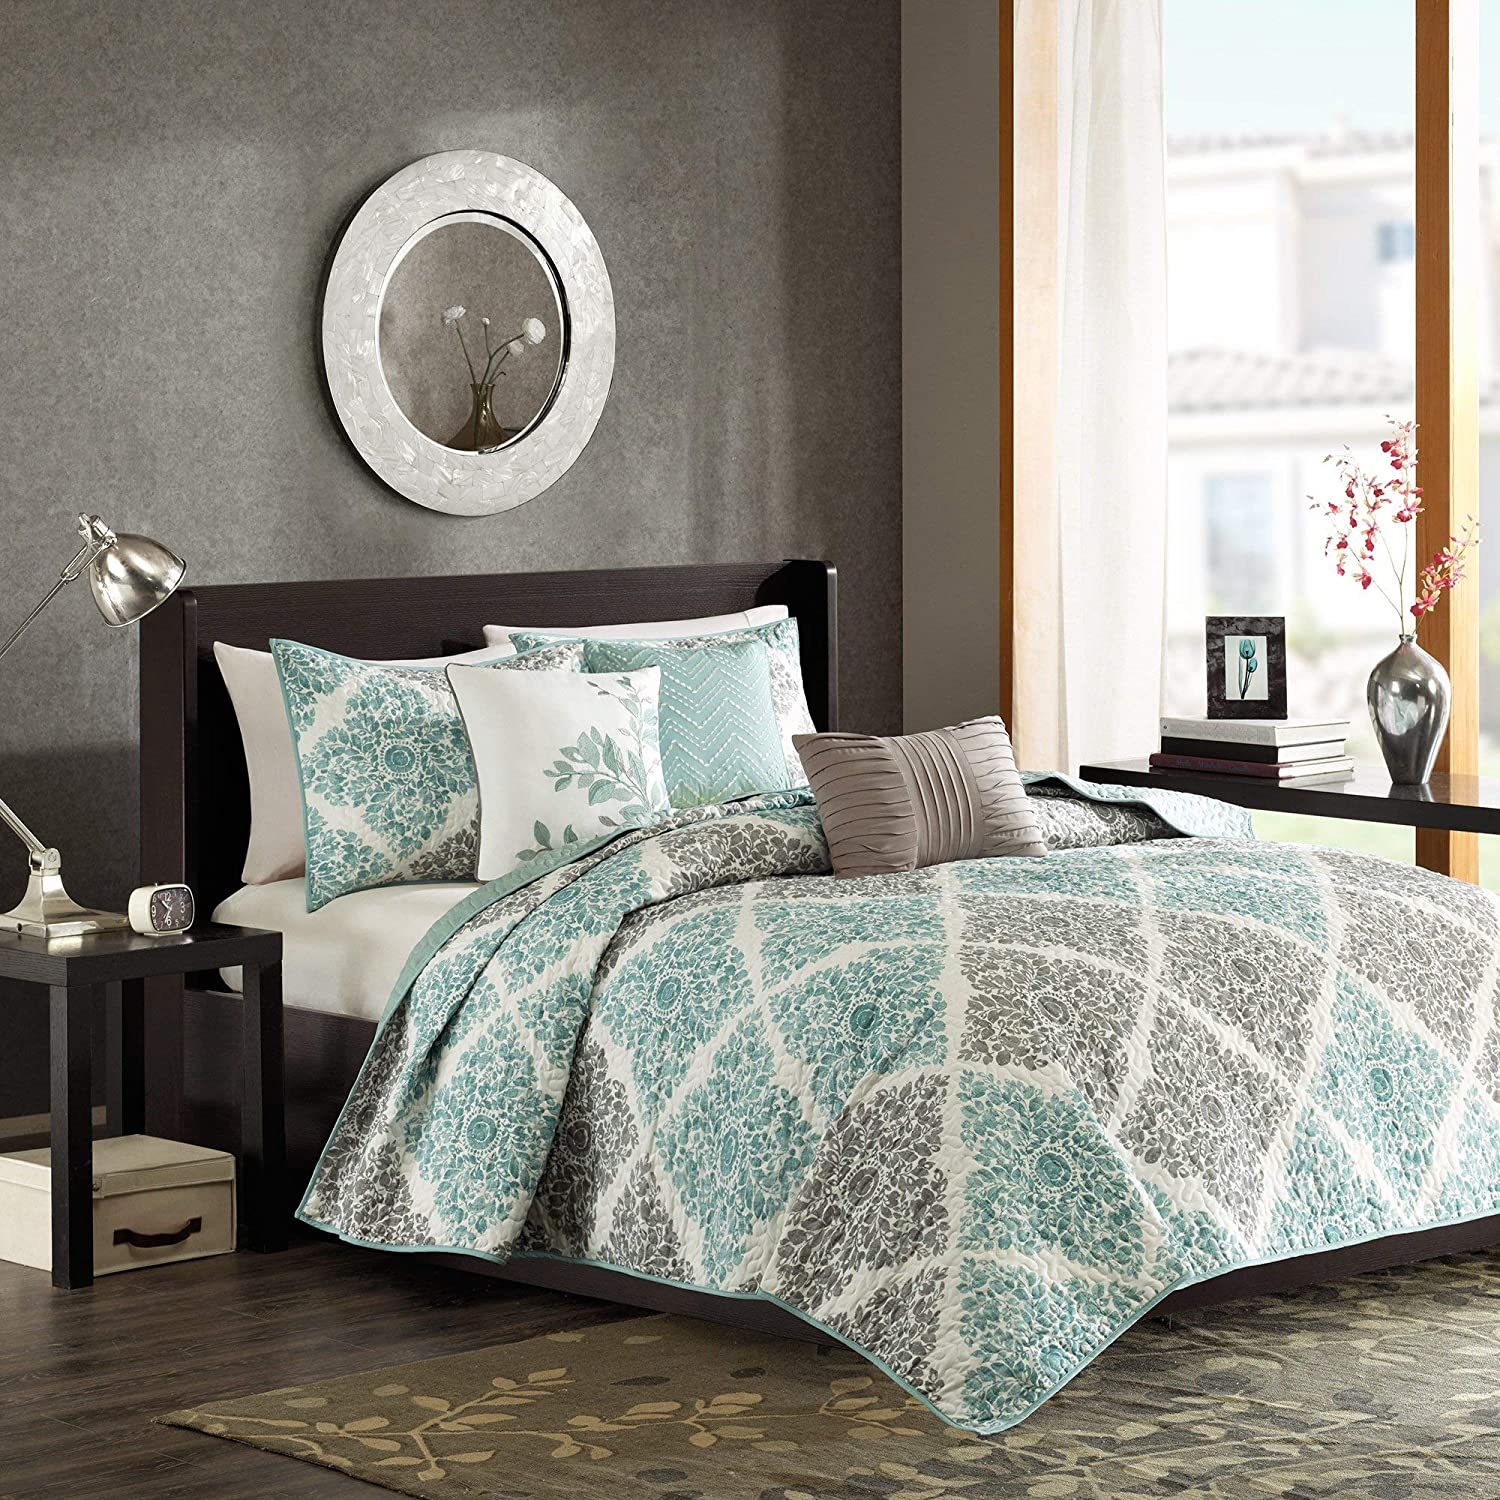 Madison Park Claire King/Cal King Size Quilt Bedding Set - Aqua, Grey, Leaf Geometric – 6 Piece Bedding Quilt Coverlets